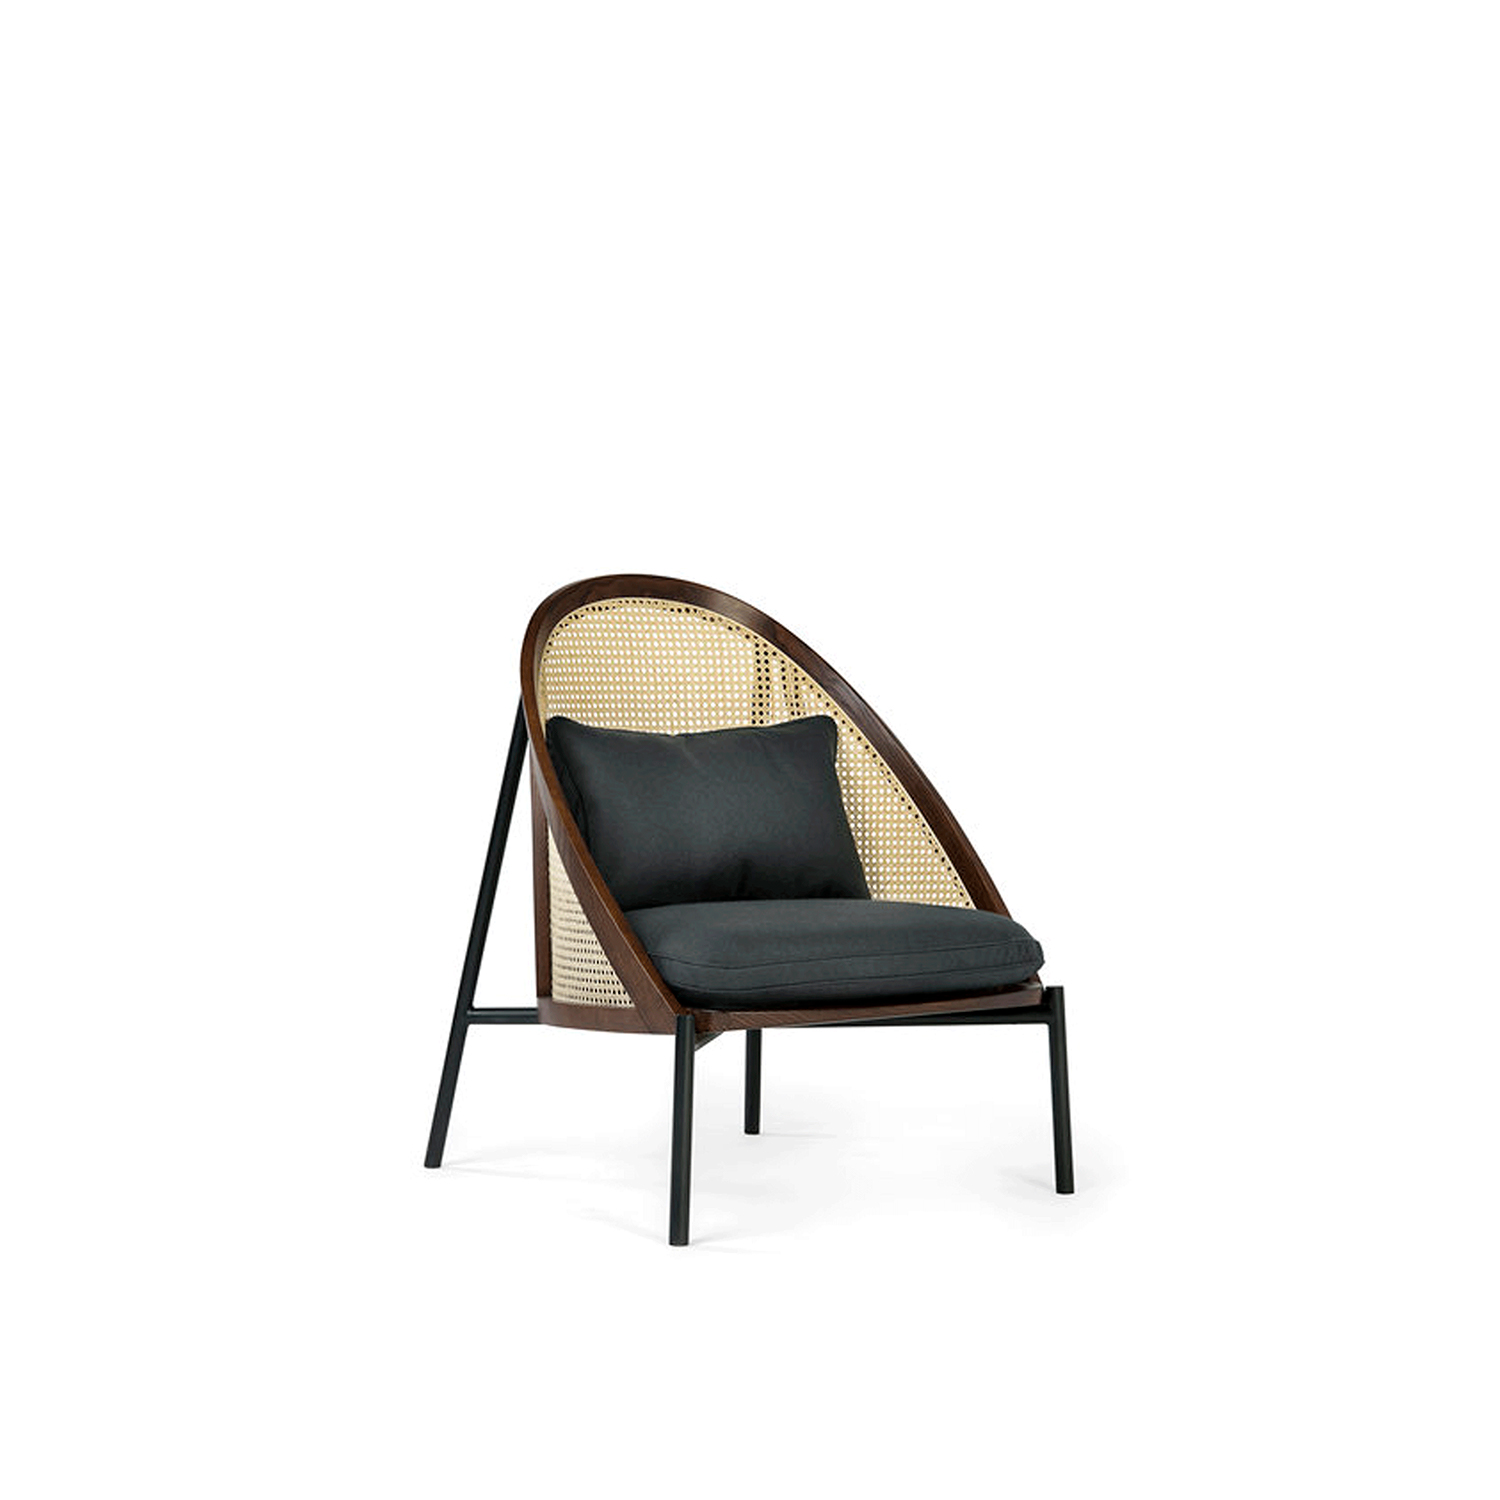 Loïe Lounge Chair - A harmonious combination of comfort and refined design, tradition and modern aesthetic. The standout element of this piece is its enveloping Viennese straw back and sides, framed in an elliptical structure in walnut-stained beechwood that was bent with Viennese-style signature steaming method. The base is in metal with a powder-base black finish with fabric belts to support the cushions. The wood is also available with a black stain.